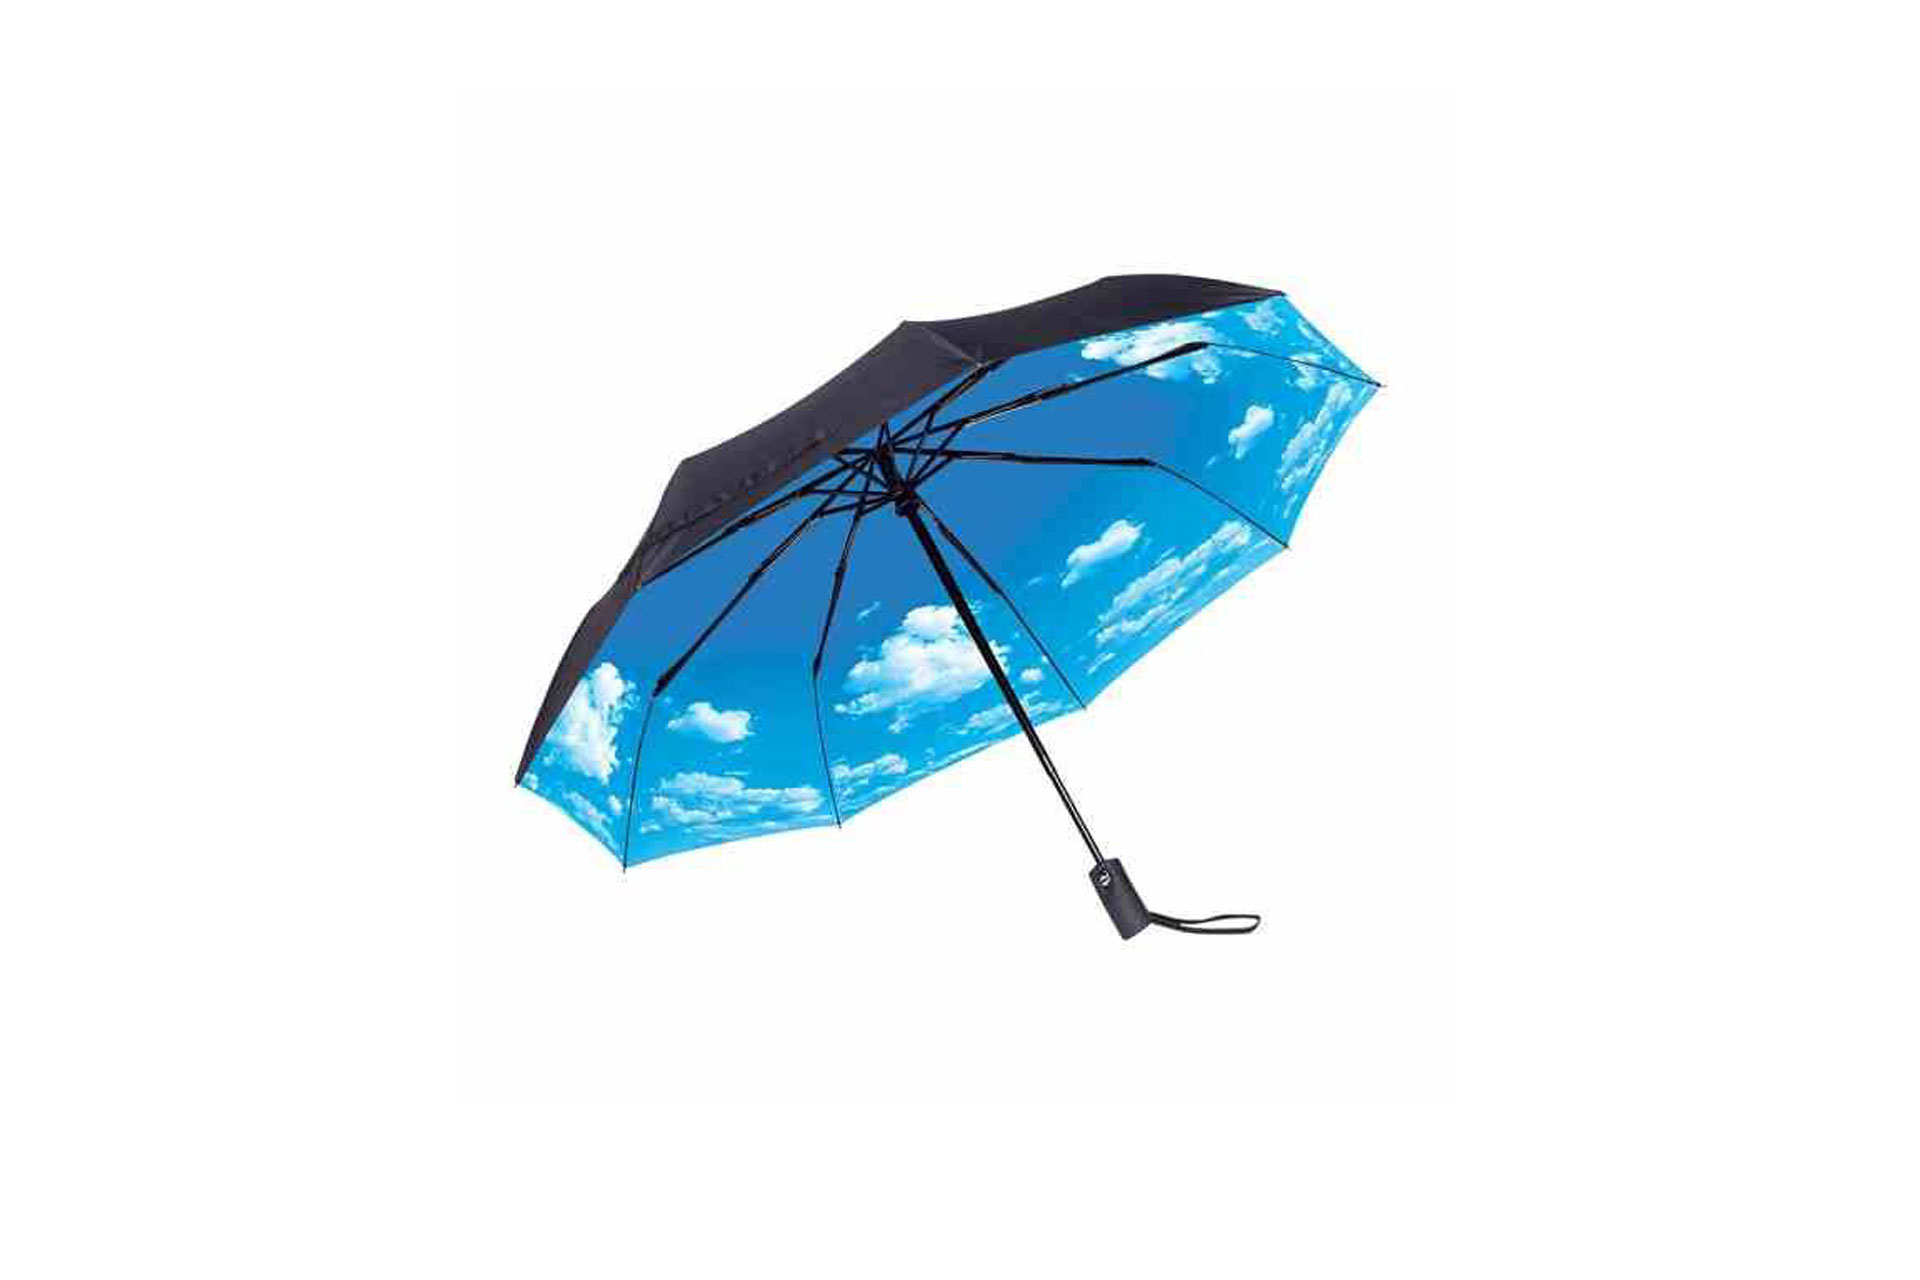 Umbrella; Courtesy of Amazon